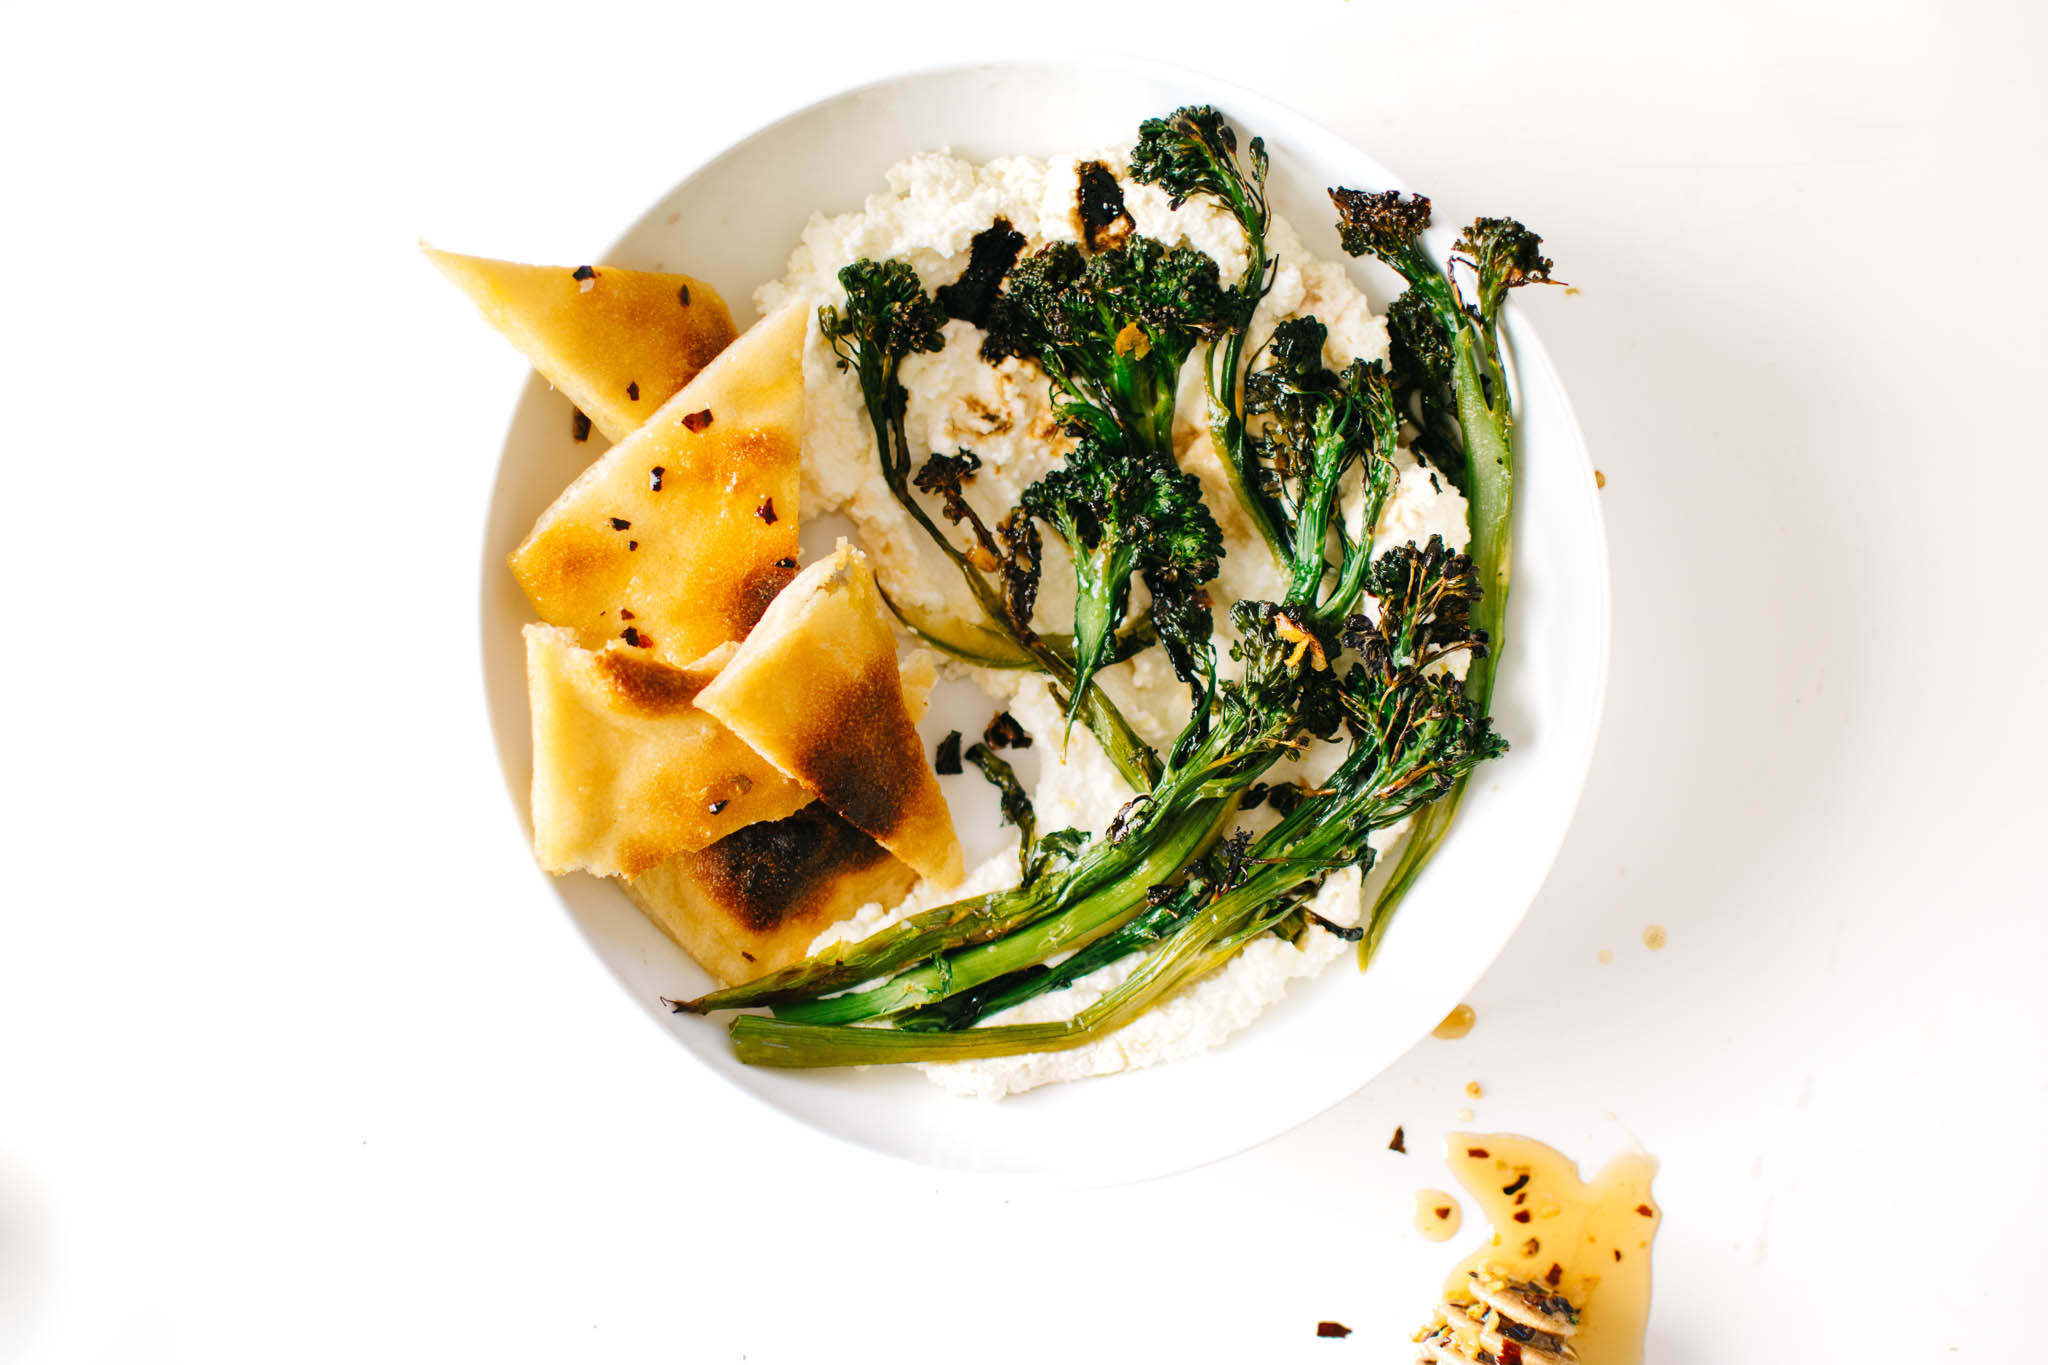 SWEET 'N' SPICY CHARRED BROCCOLINI WITH GARLICKY RICOTTA.